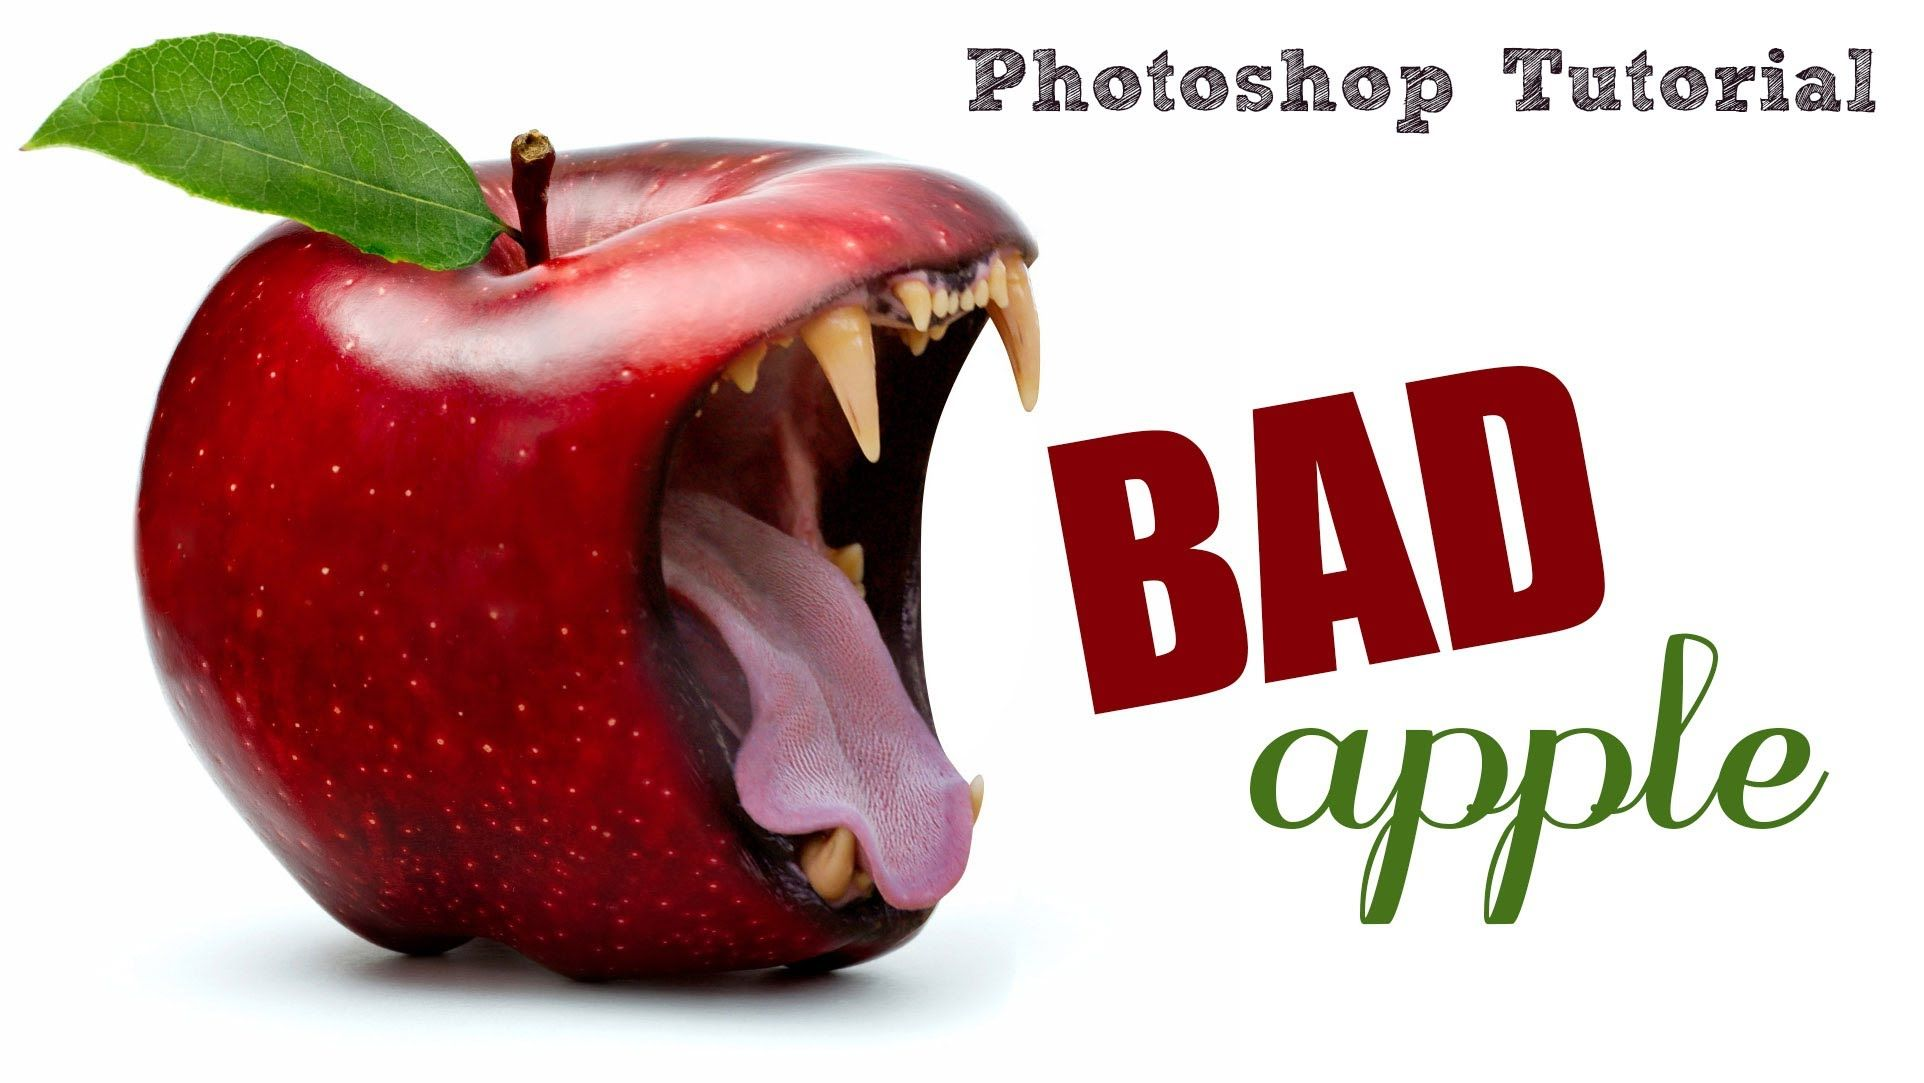 Photoshop tutorial photo blending and manipulation 2003 photoshop tutorial photo blending and manipulation photoshop videolightroom tutorialadobe baditri Images